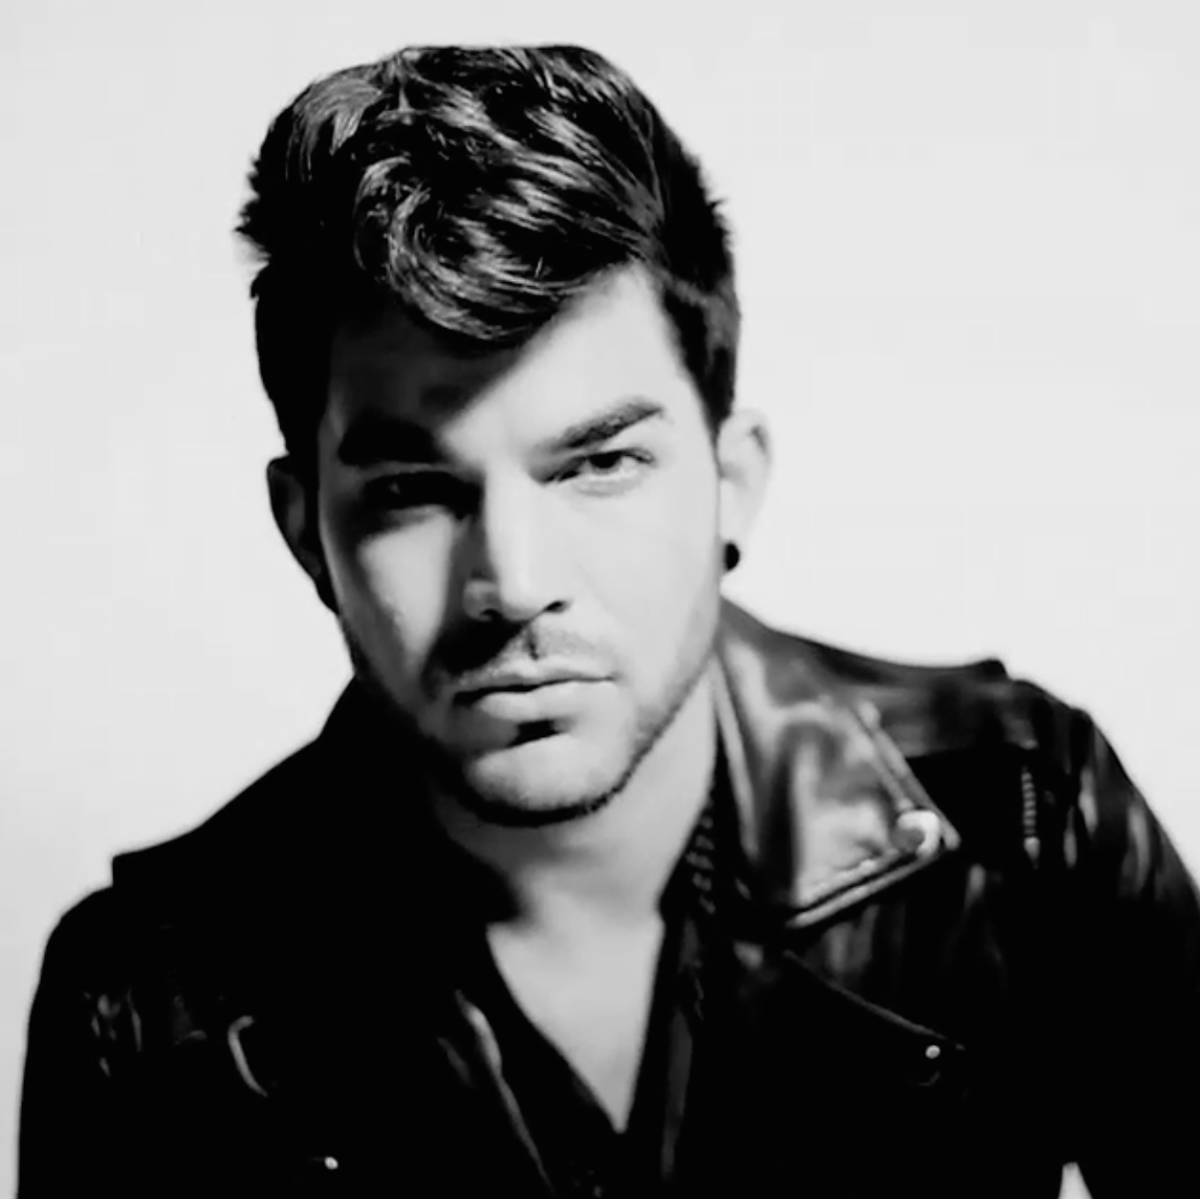 Adam Lambert shares 'Ghost Town' lyrics as the excitement builds… http://t.co/vXlYsT9xtl http://t.co/OYRShQZ4EI